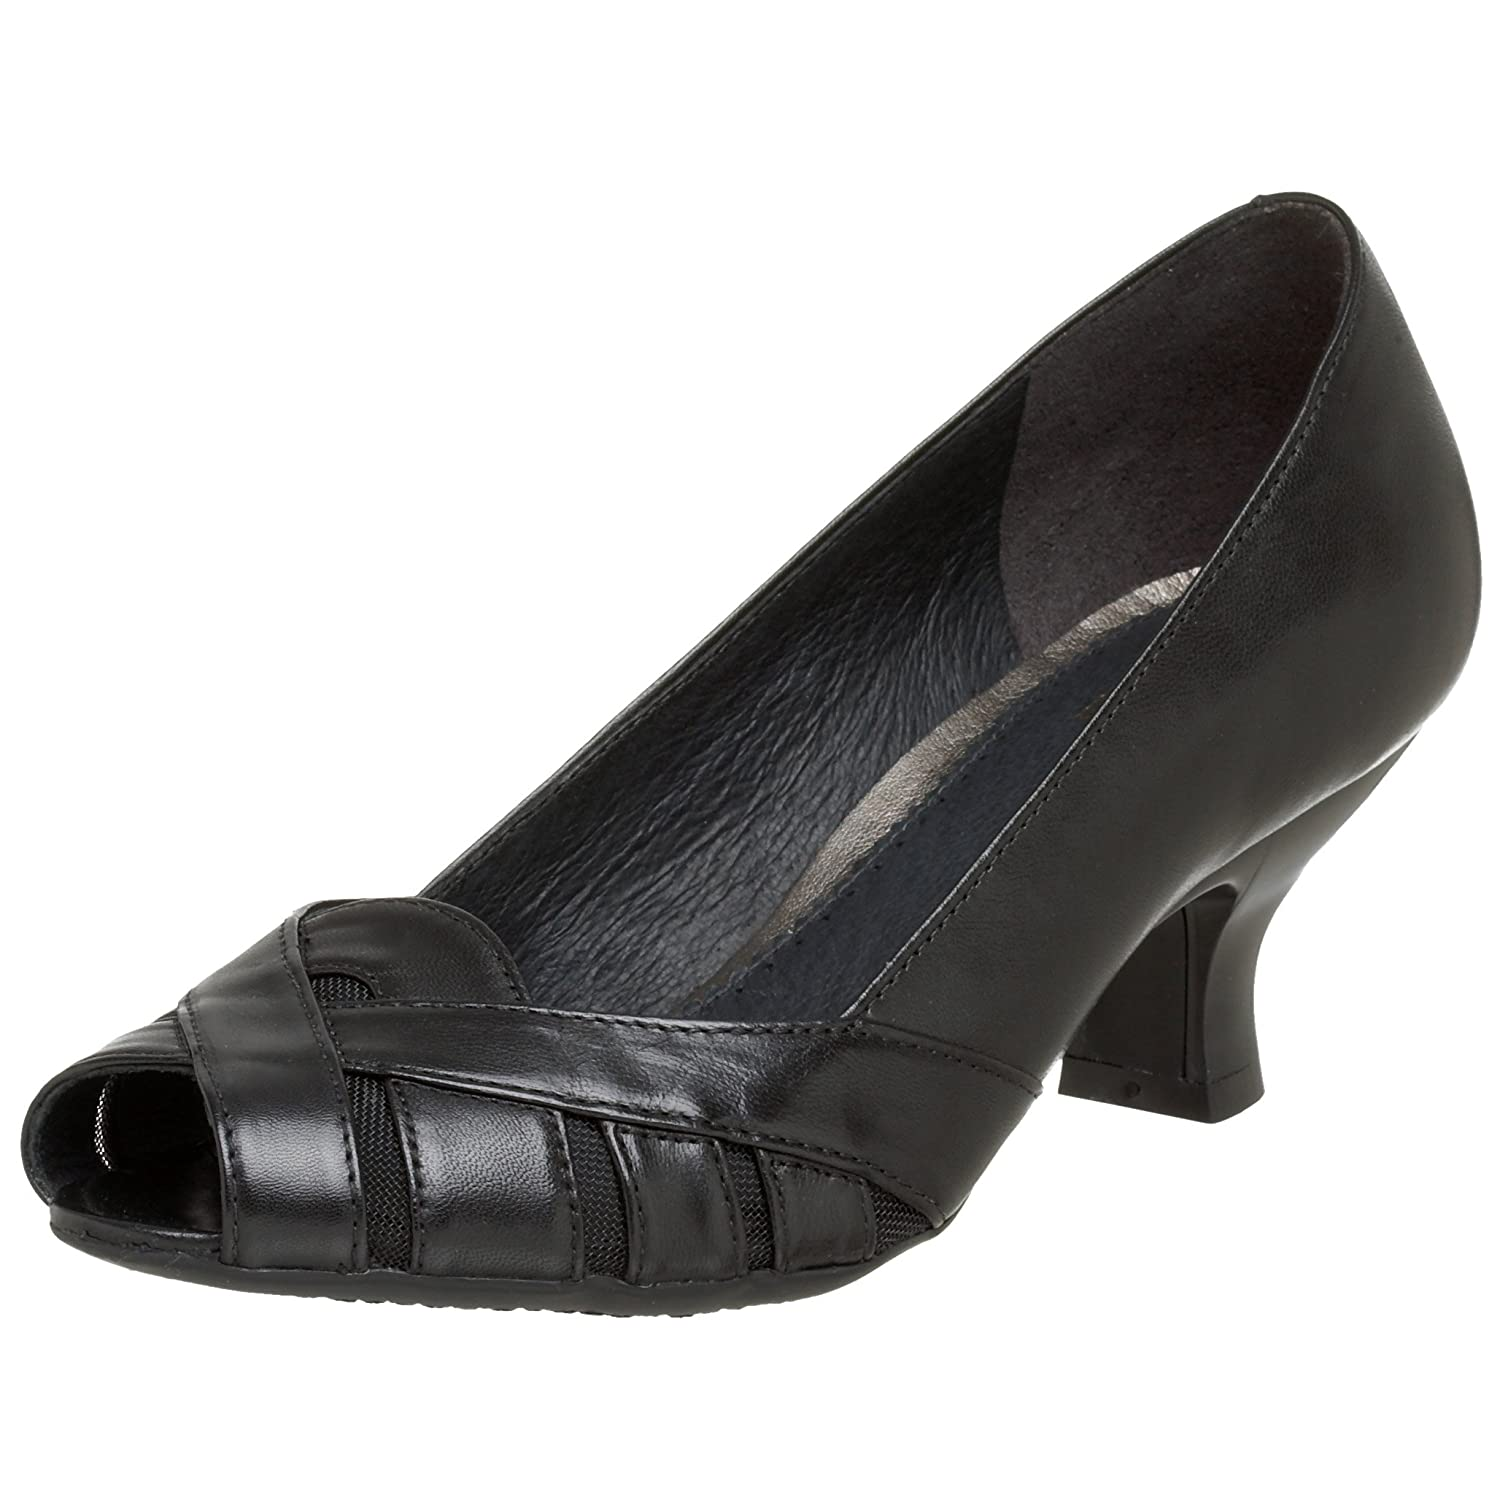 Clarks Women's Apple Star Pump - Free Overnight Shipping & Return Shipping: Endless.com :  clarks heels shoes peeptoe